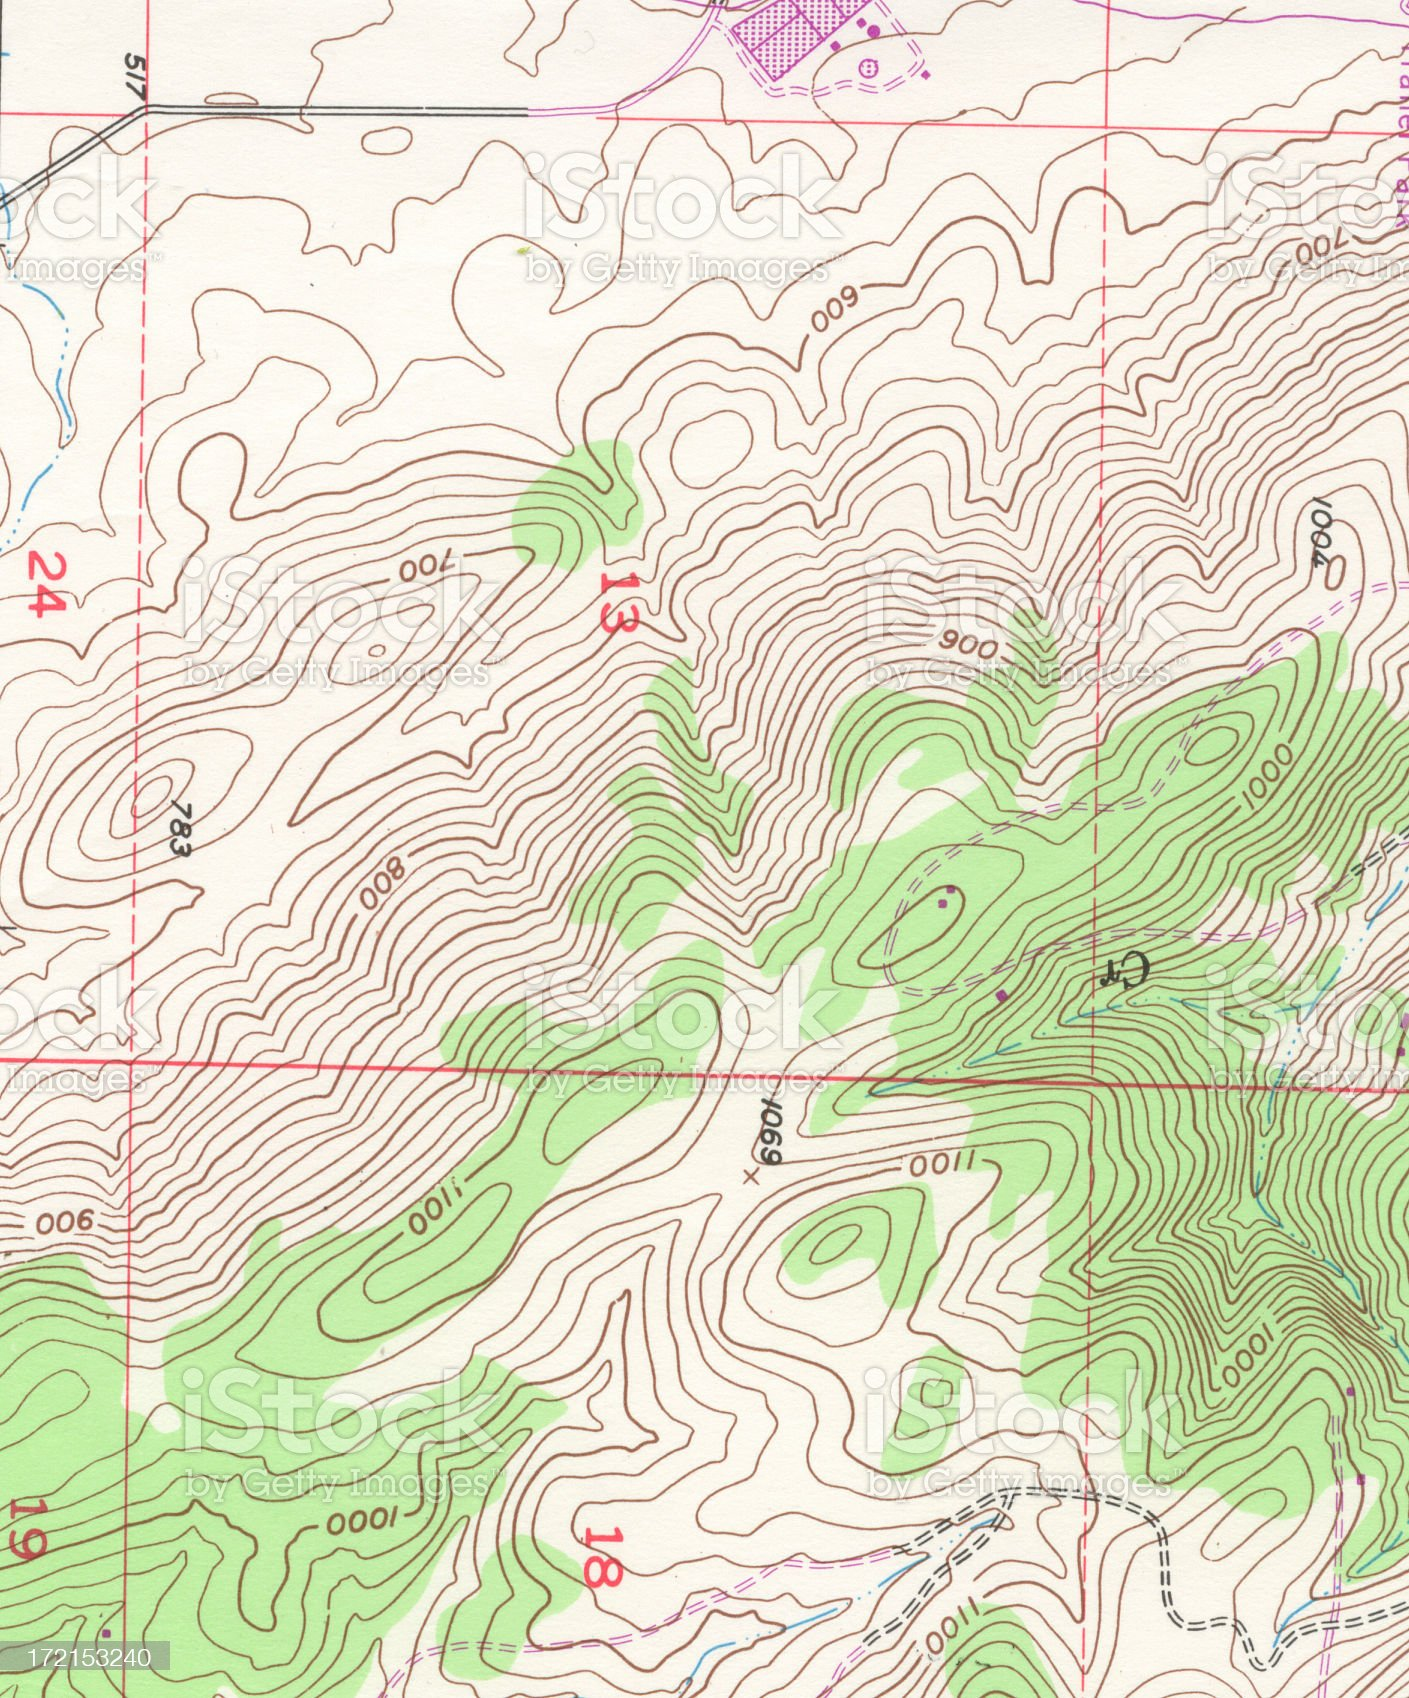 Old Topographical Map Detail royalty-free stock photo